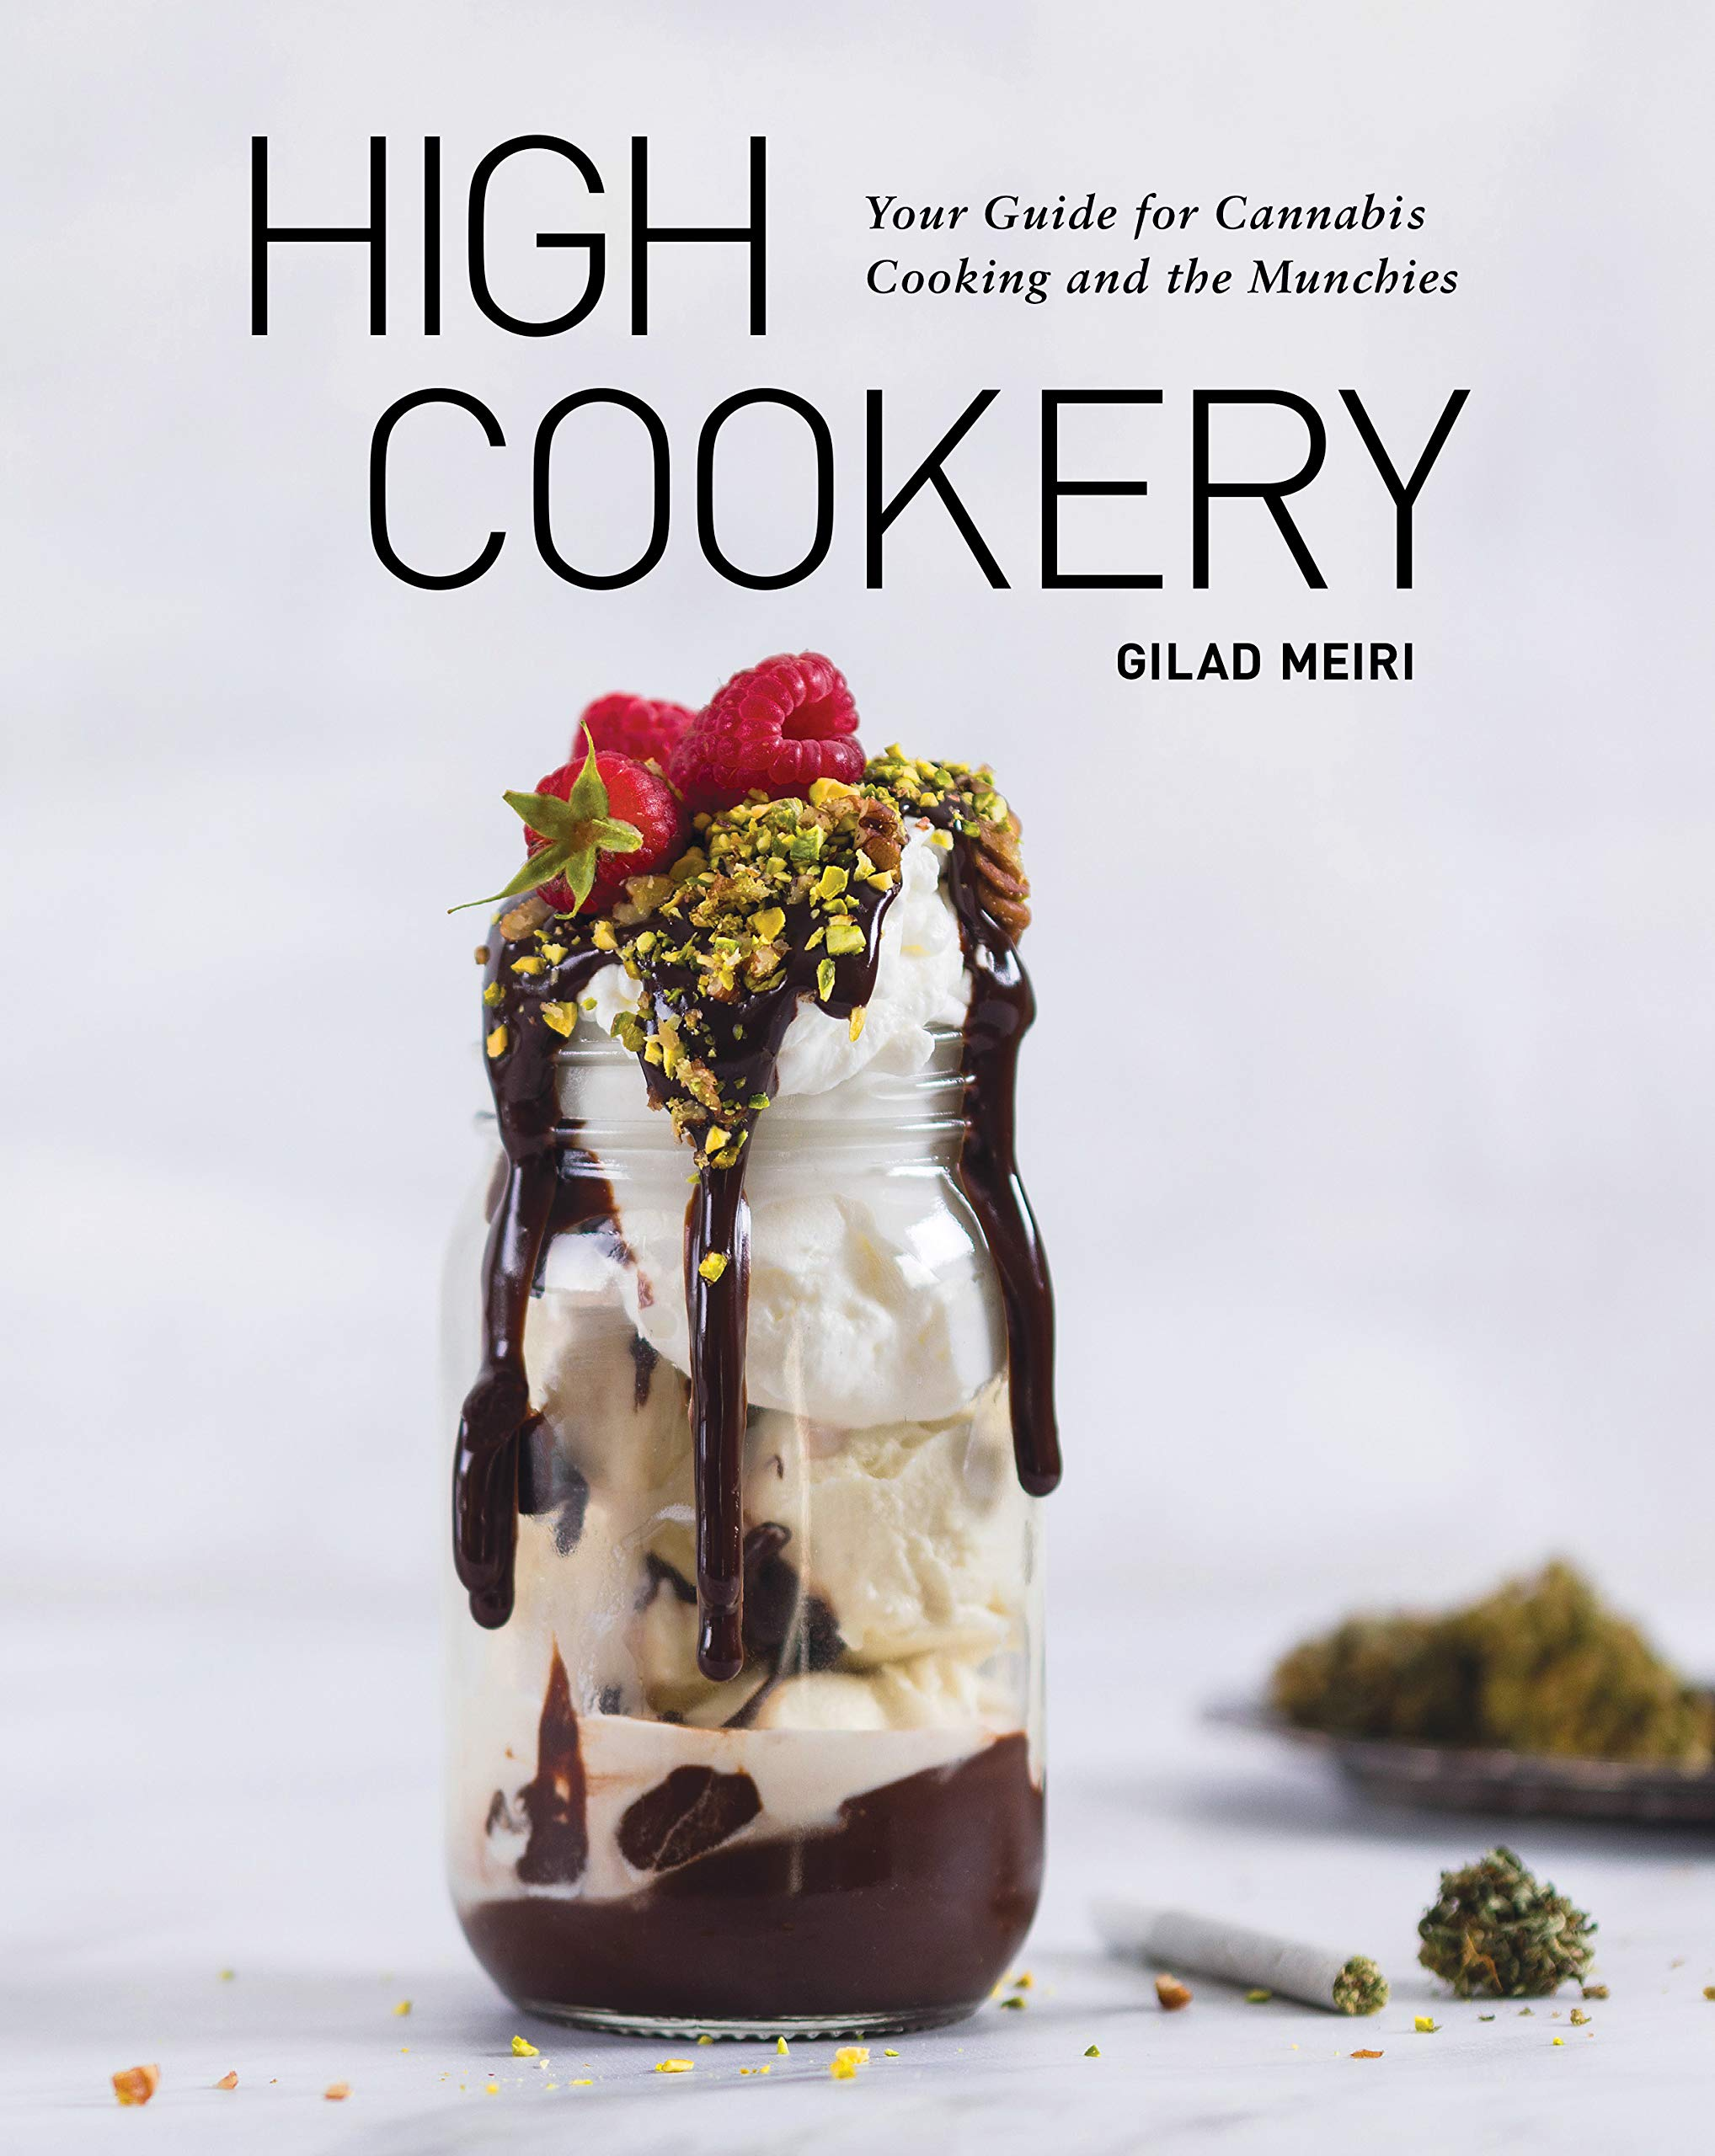 High Cookery: Your Guide for Cannabis Cooking and the Munchies